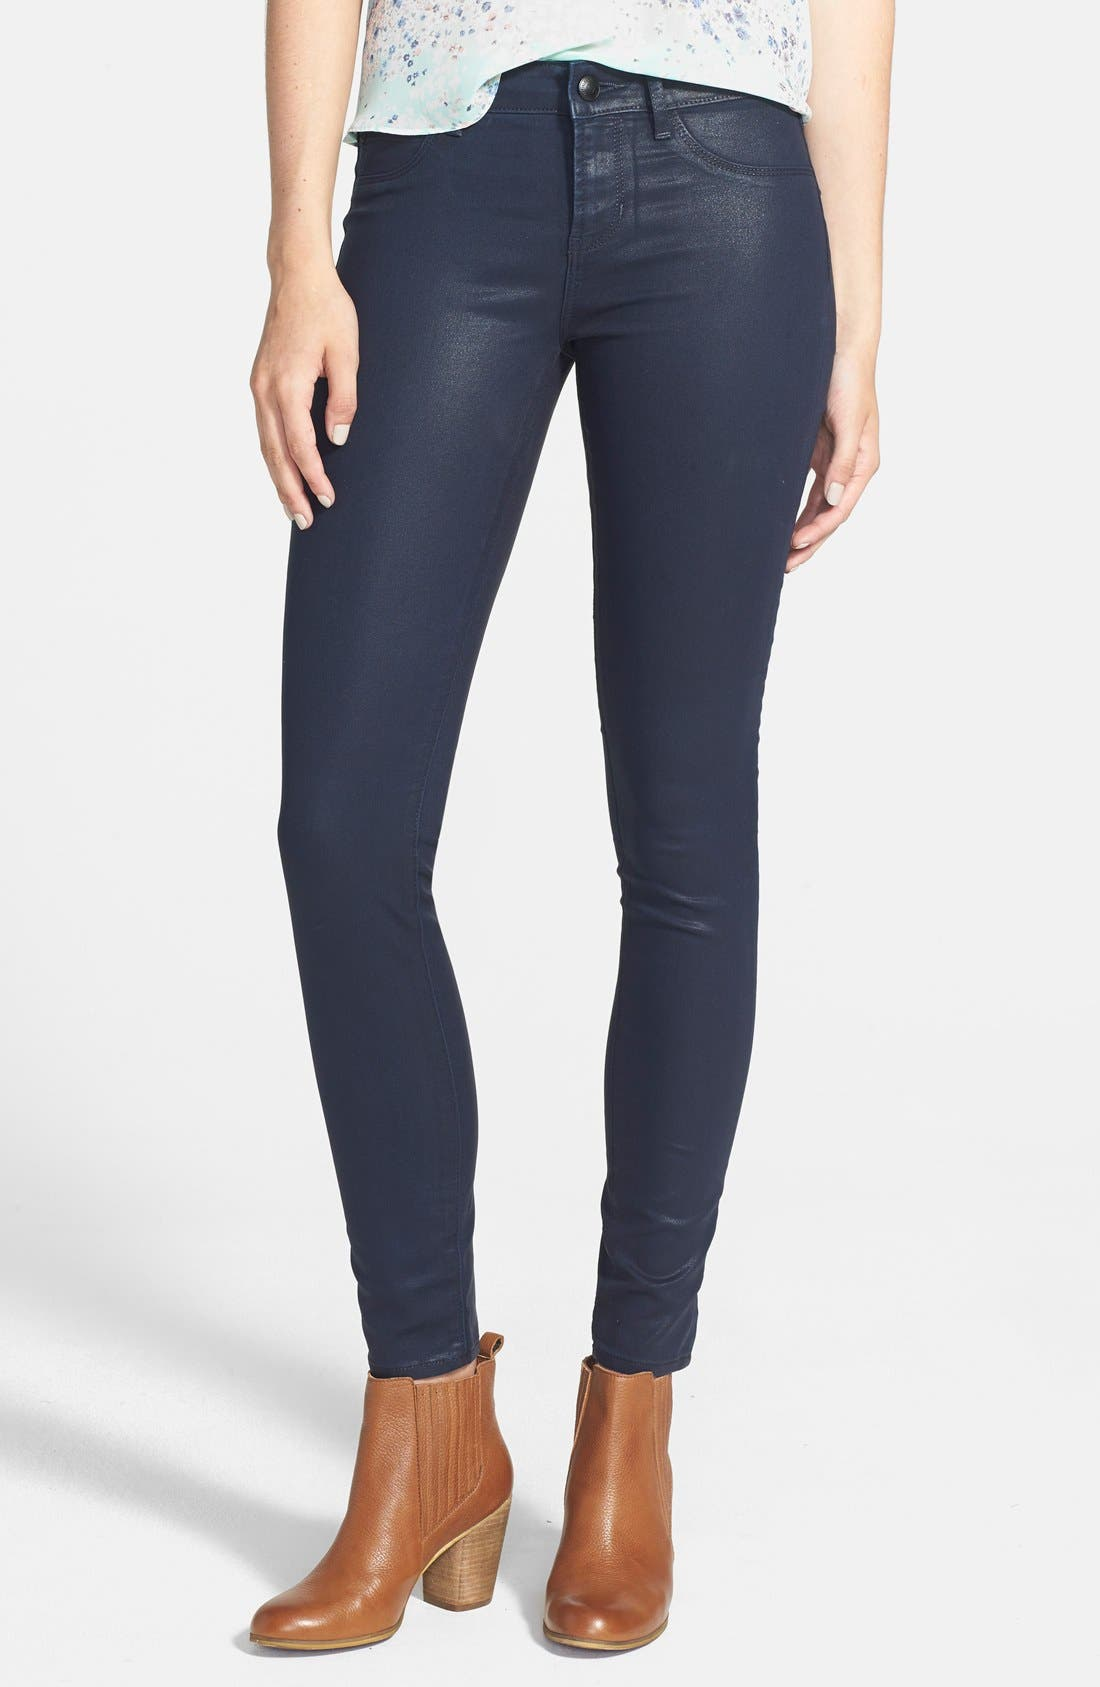 Alternate Image 1 Selected - Articles of Society 'Mya' Coated Skinny Jeans (Dark Blue)